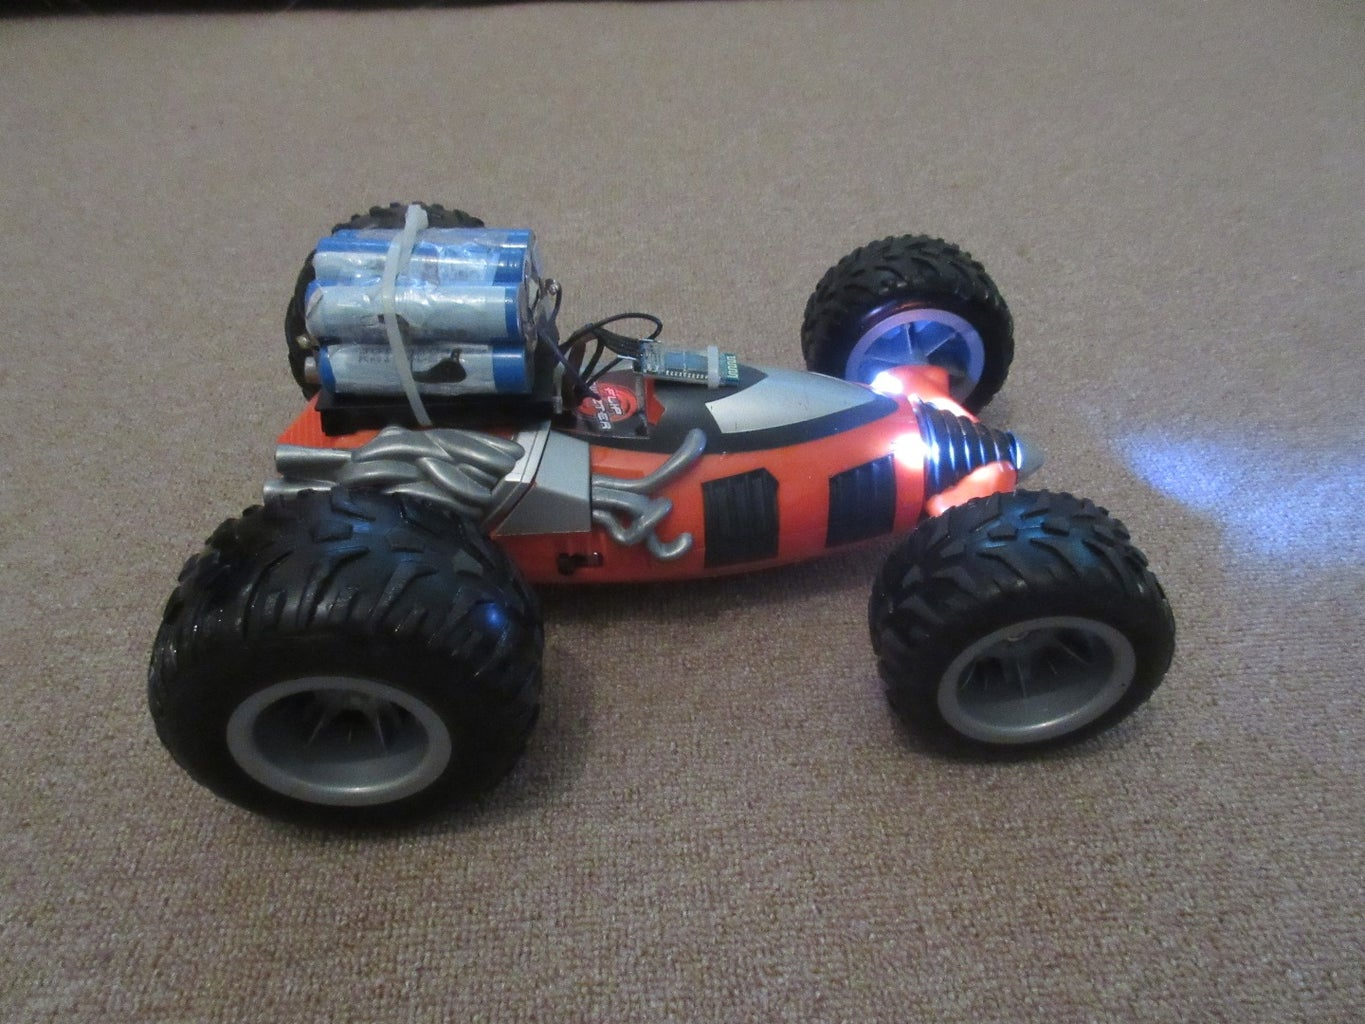 Some Pictures of Our RC Car